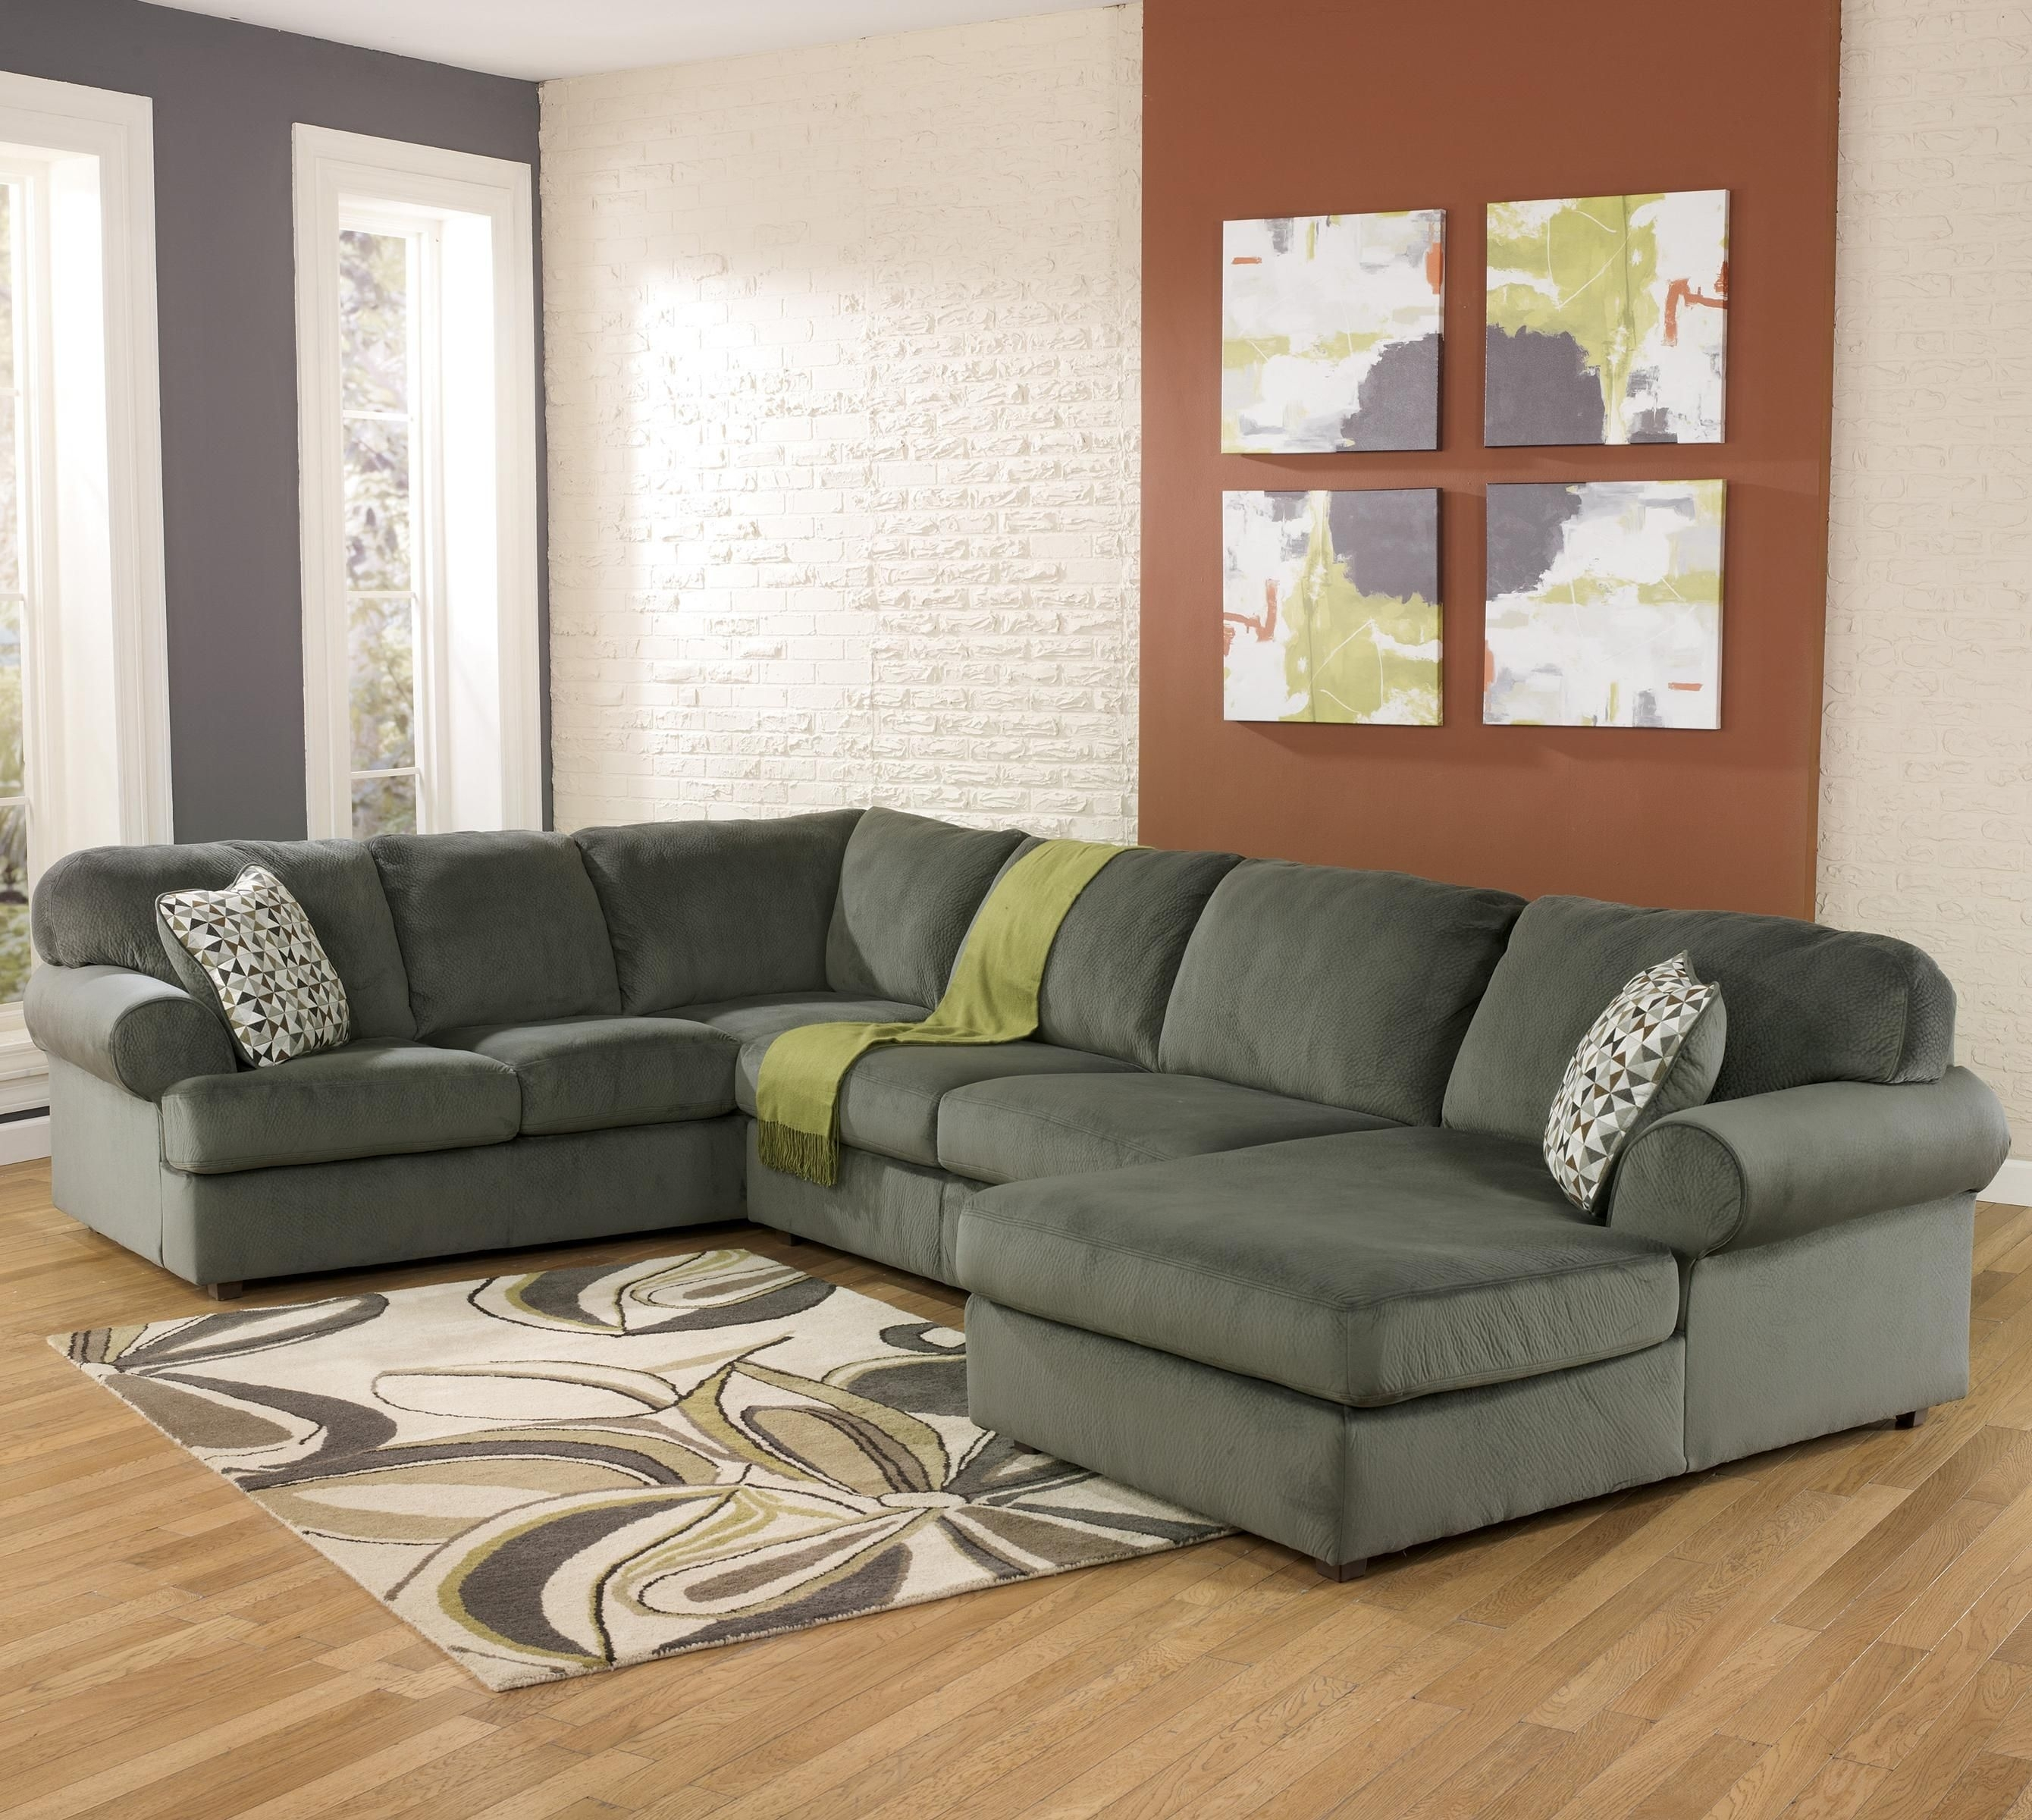 Jessa Place - Pewter Casual Sectional Sofa With Right Chaise within Collins Sofa Sectionals With Reversible Chaise (Image 15 of 30)